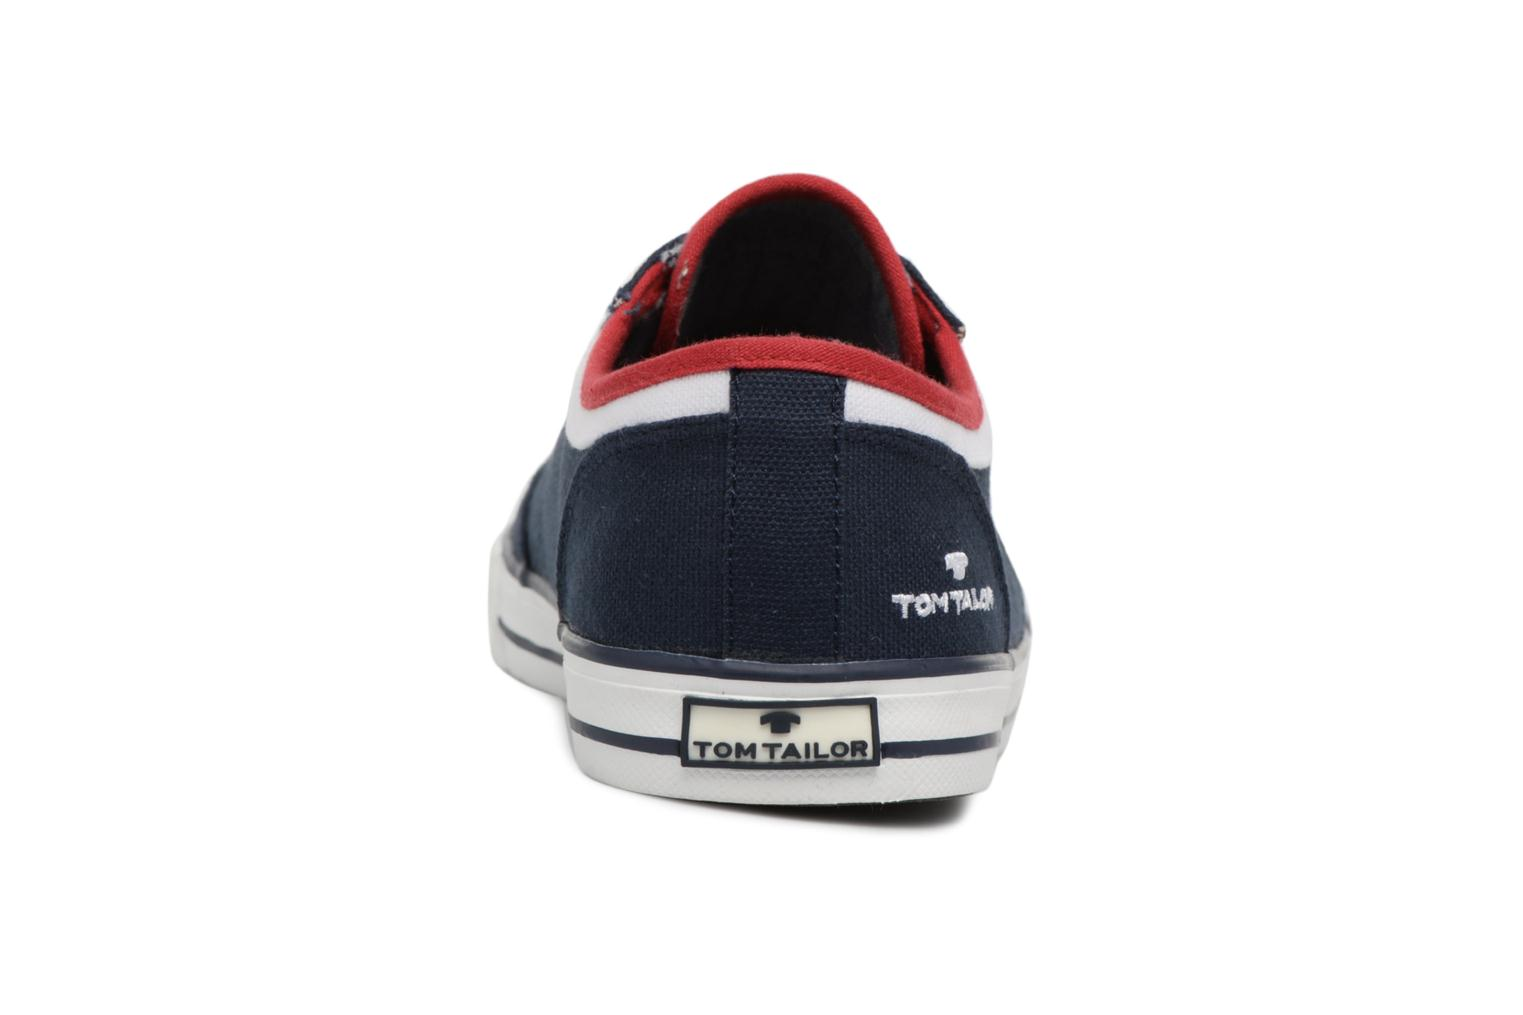 Comu Tom Navy Tailor Tom Tailor SgU0xq7x